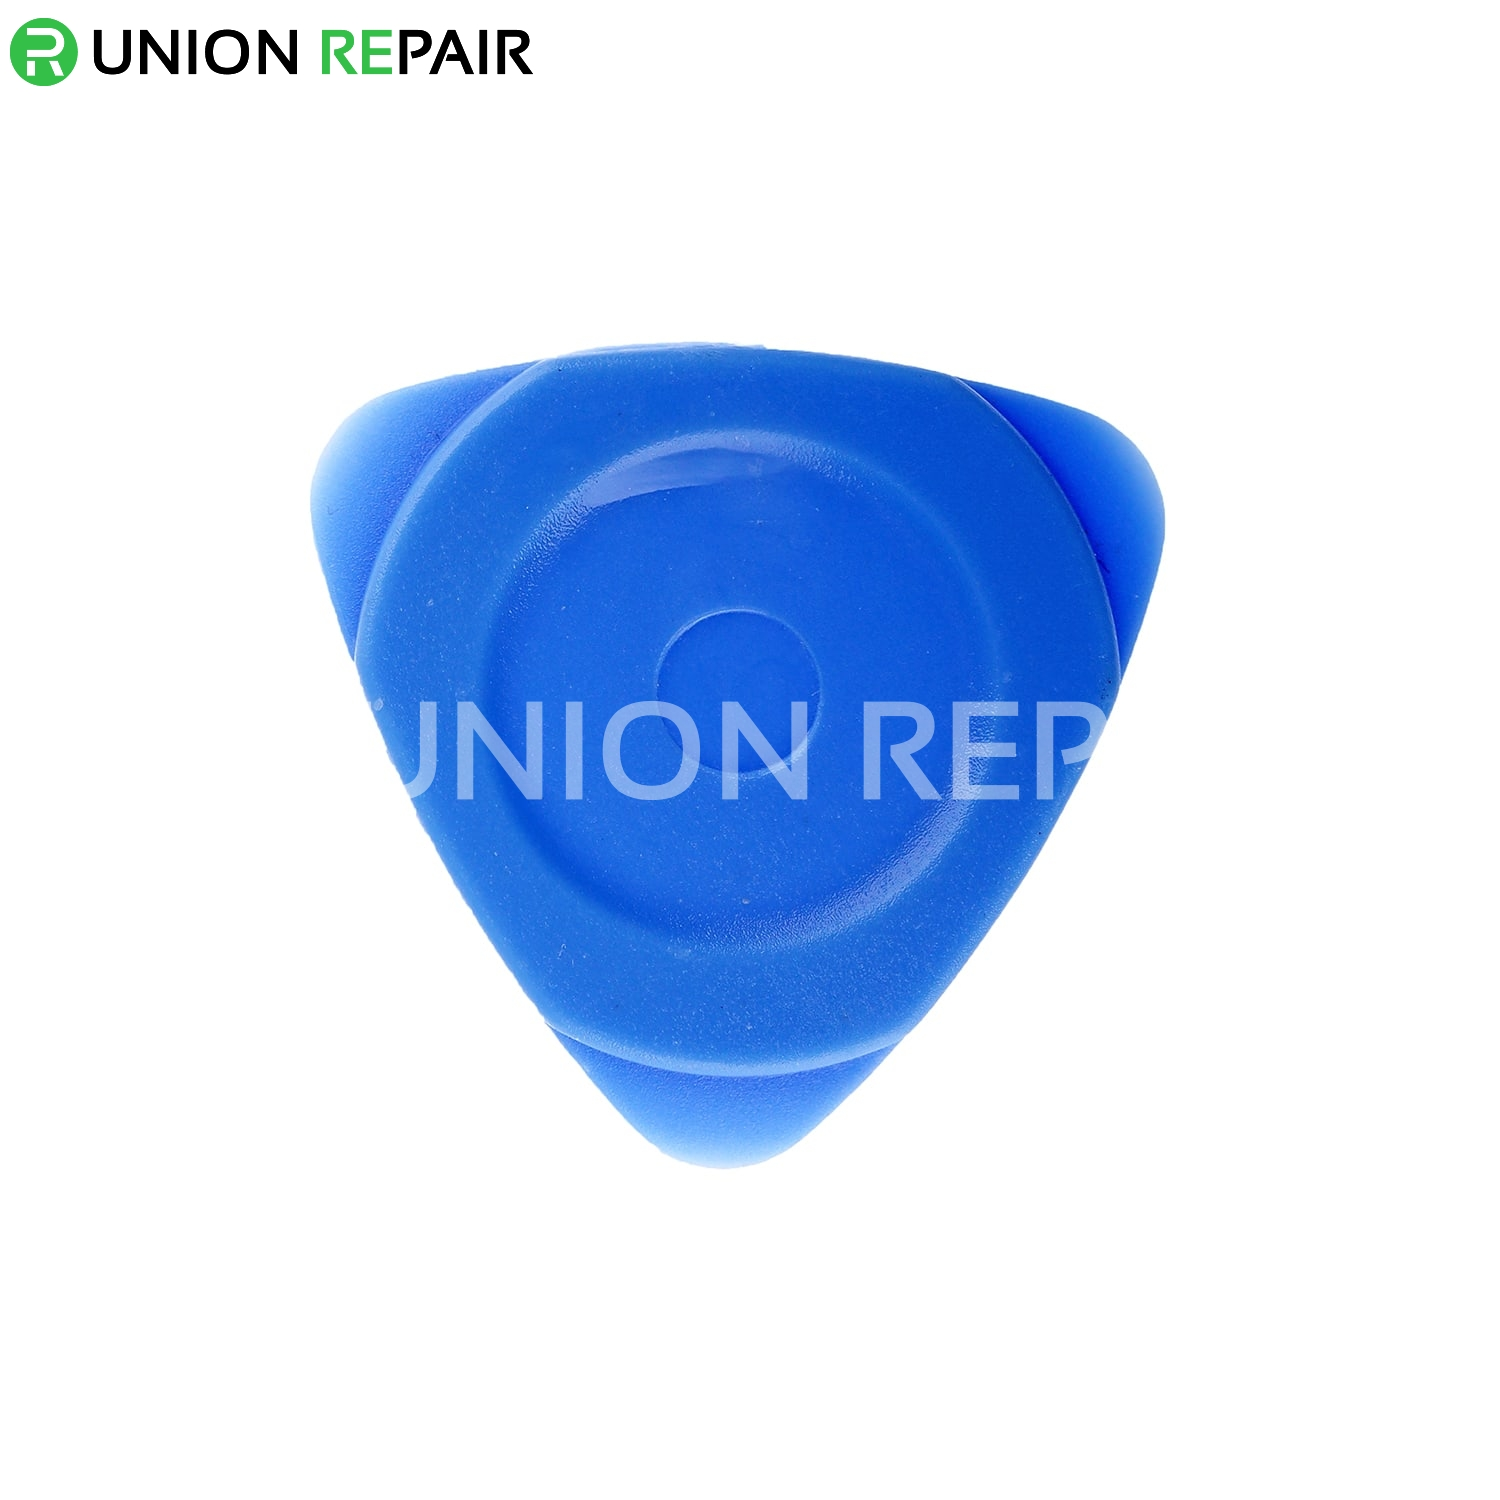 Kaisi Blue Guitar Pick Disassembly Tool Big Size, Condition: Small Size